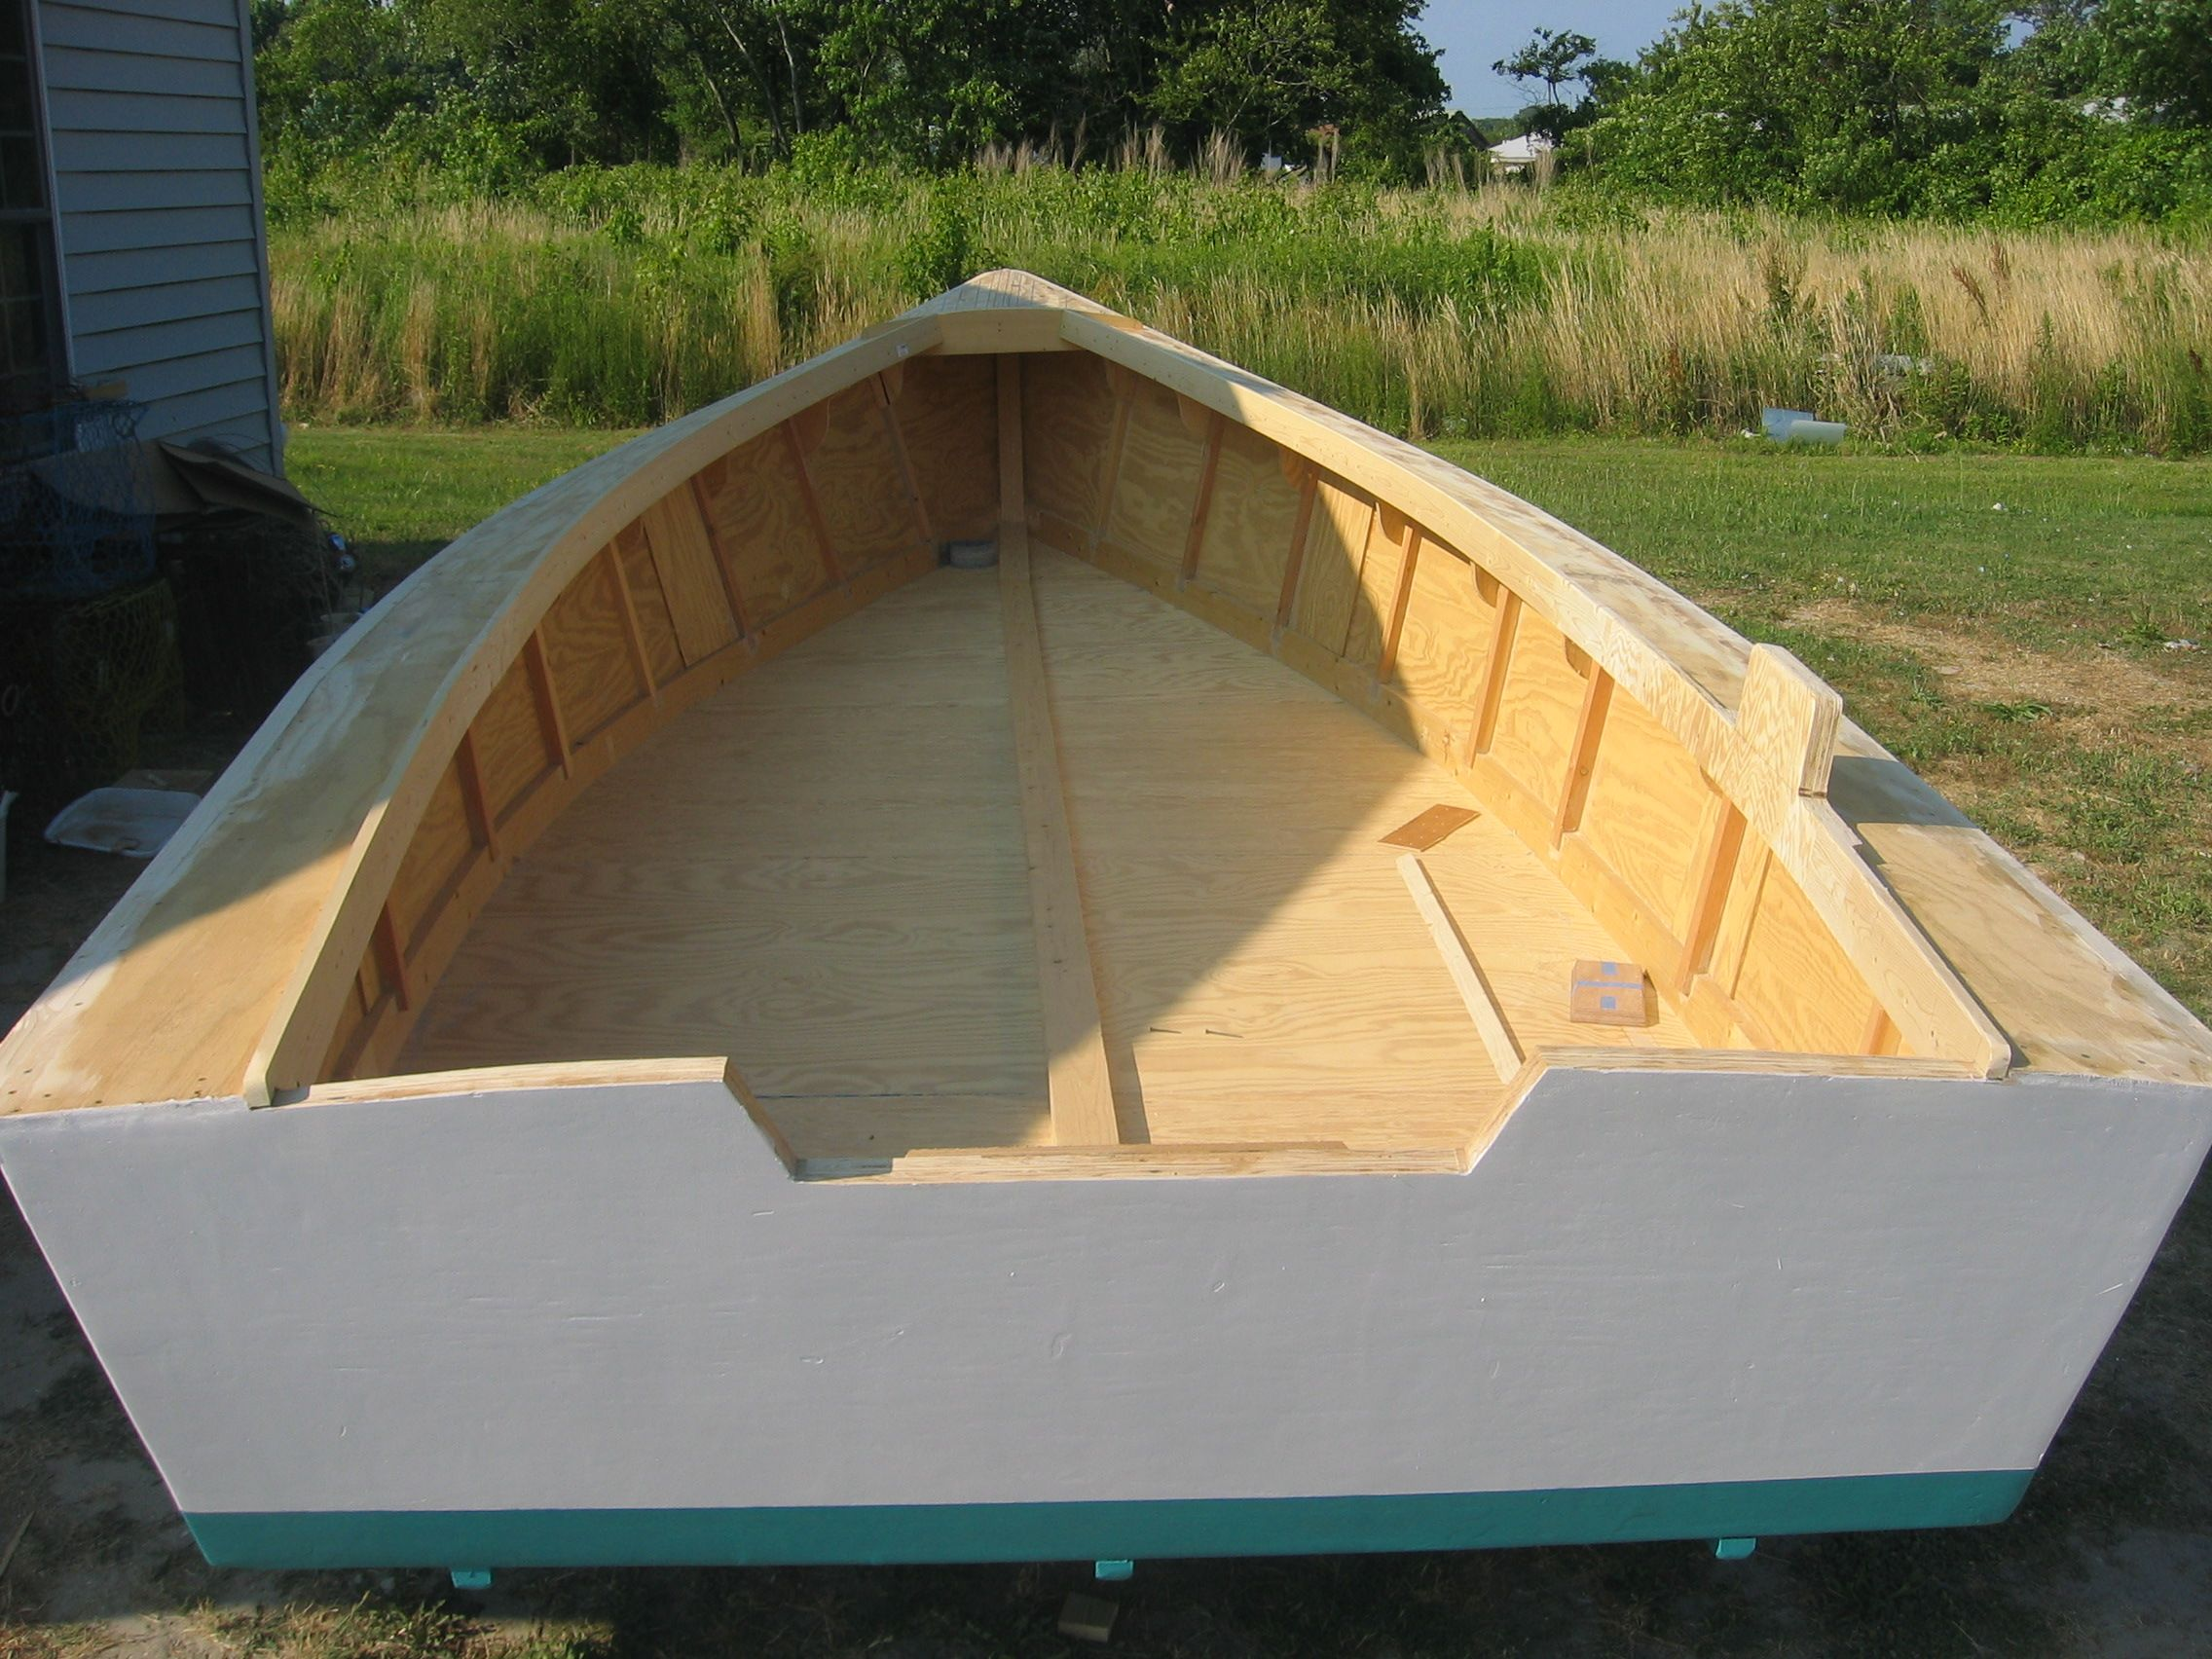 clam skiff - Google Search   power skiff   Wooden boats, Boat, Boat building